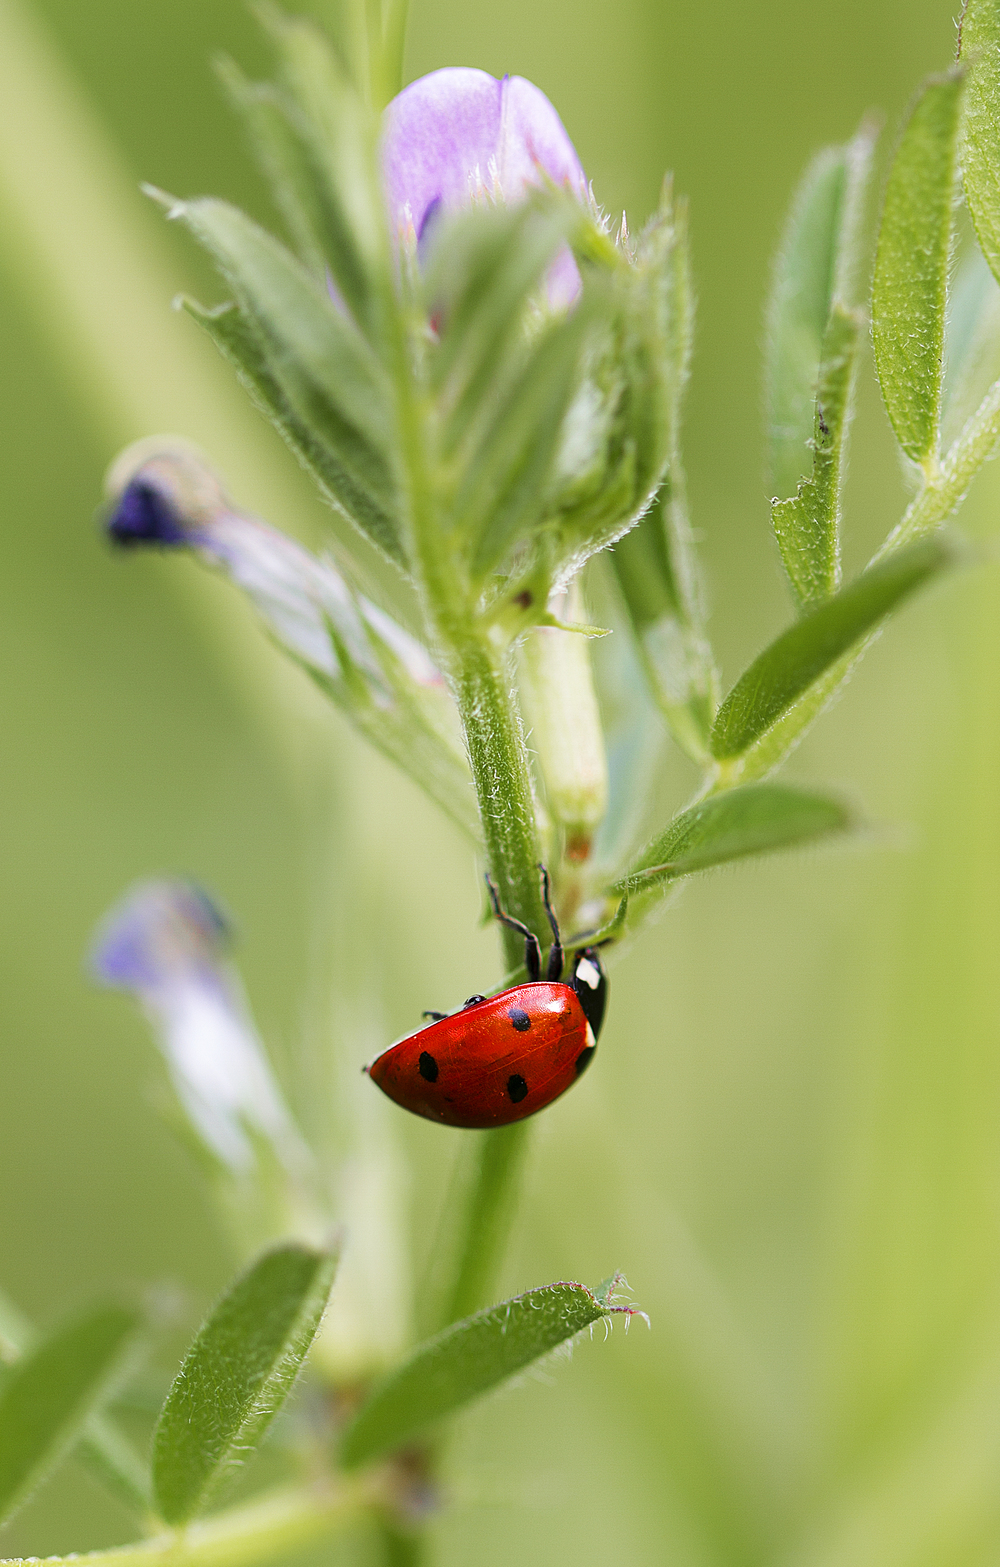 The plant's friend the aphids enemy Read about The Coccinellidae (/ˌkɒksɪˈnɛlɪdaɪ/) Comments